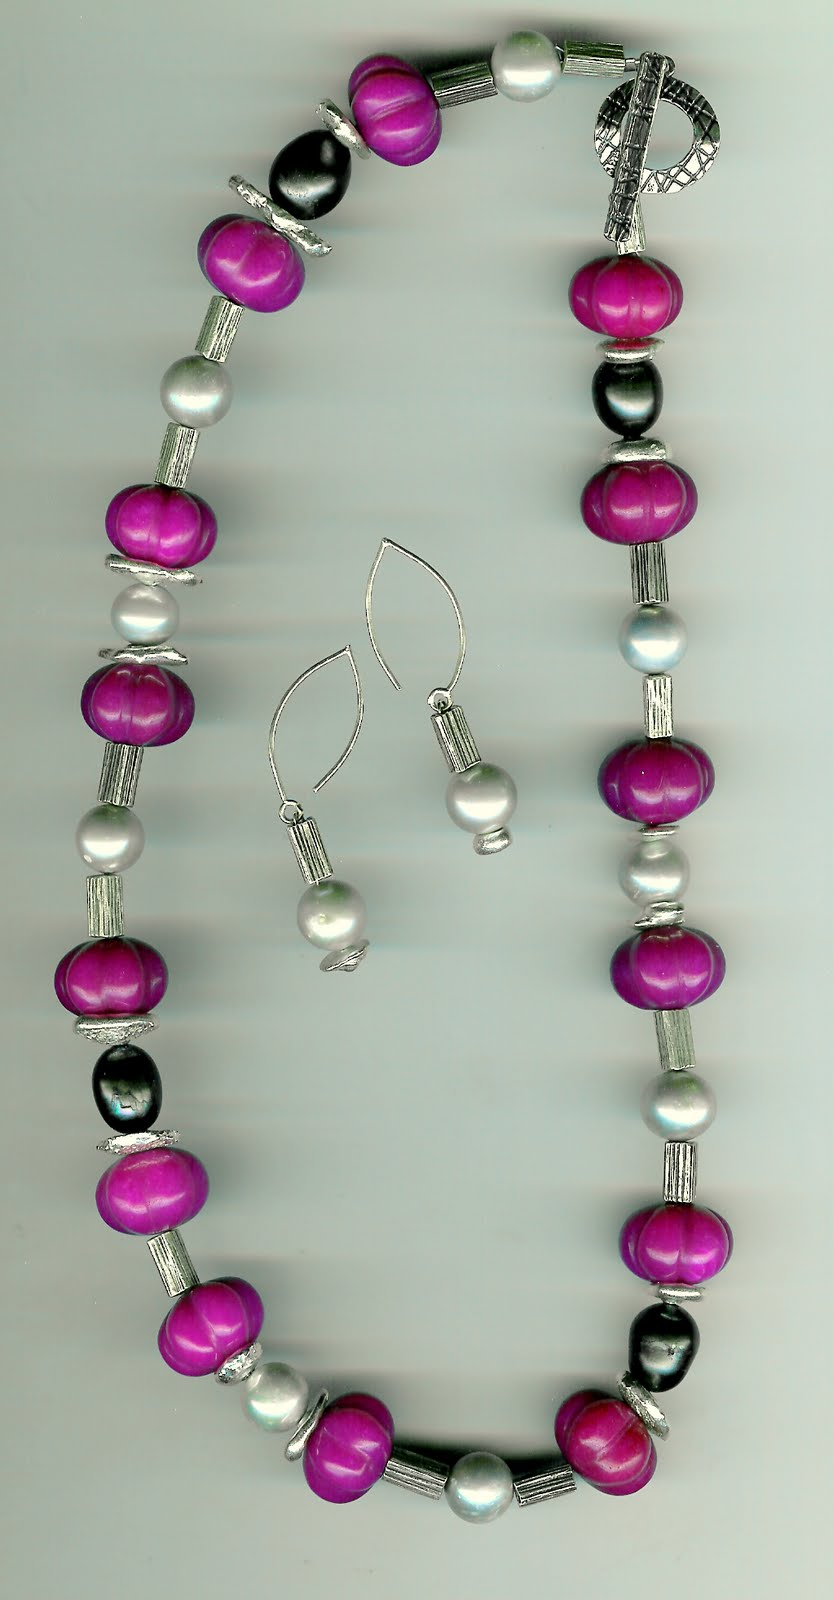 234. Dyed Jade, Akoya Pearls and Thai Sterling Silver